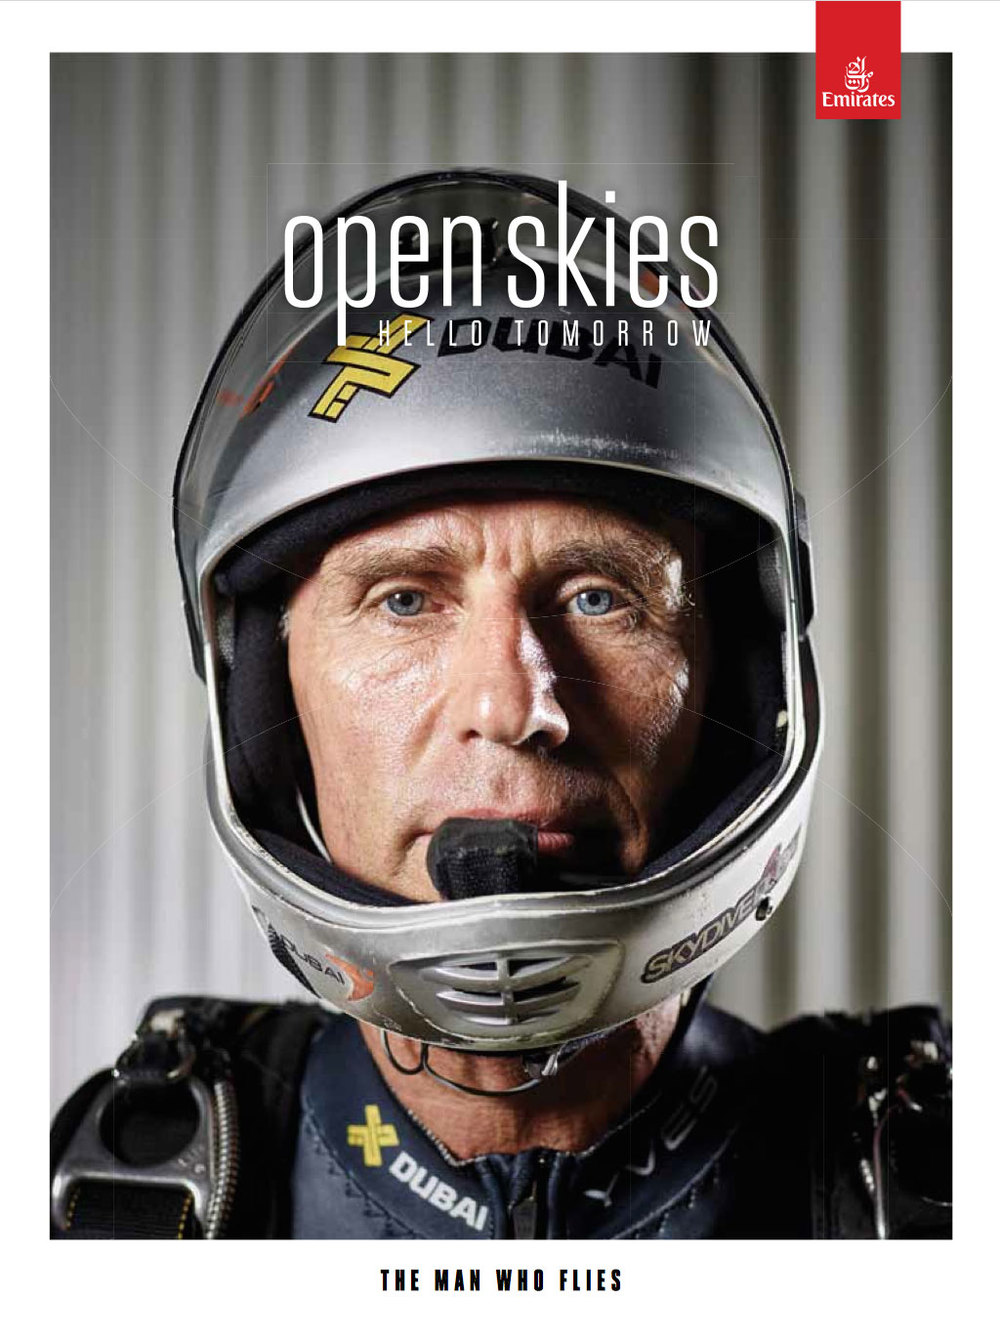 Emirates 'Open Skies' magazine cover story